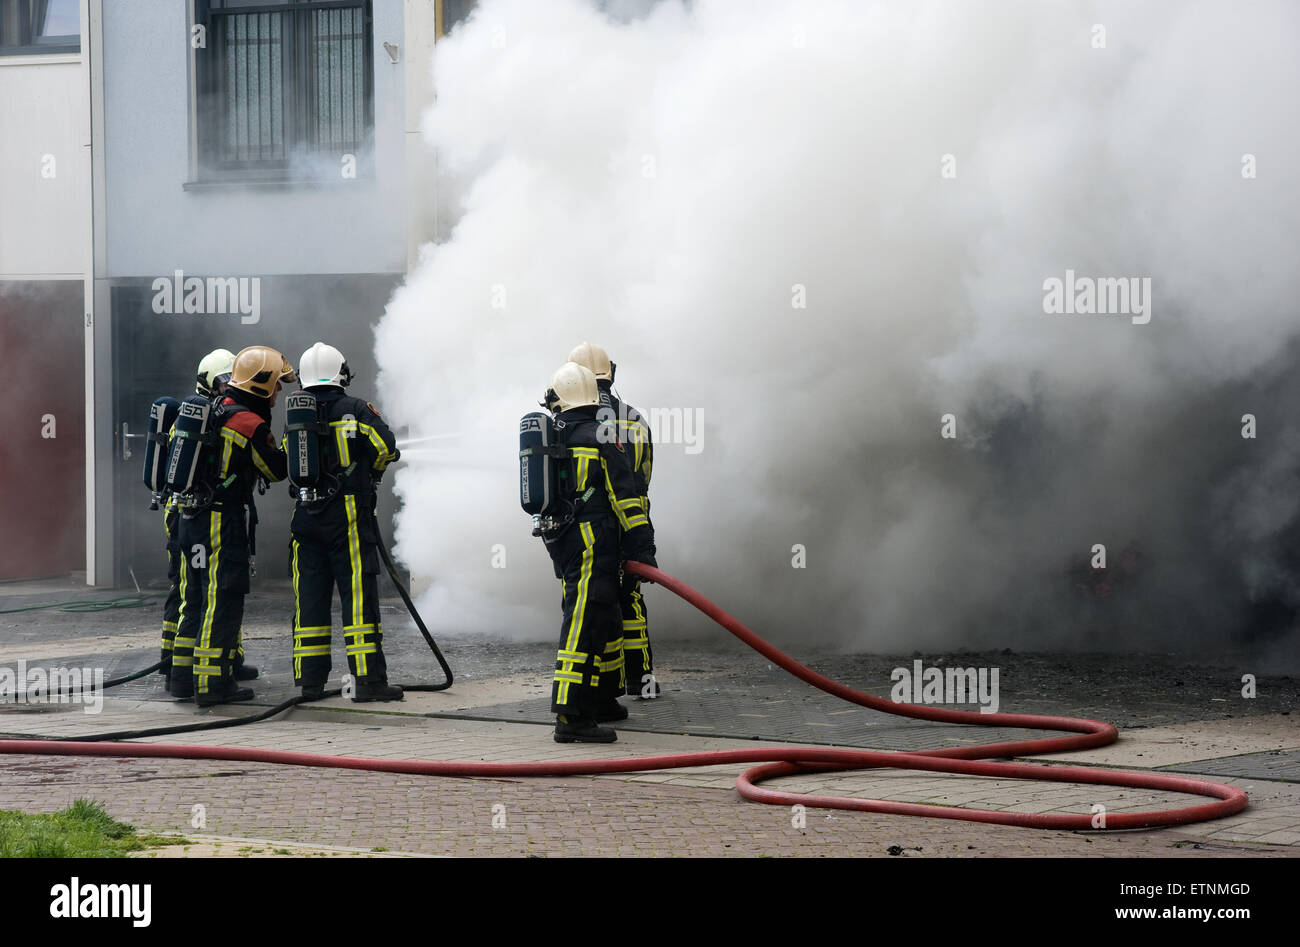 Firefighters are busy to extinguish a fire in a house - Stock Image